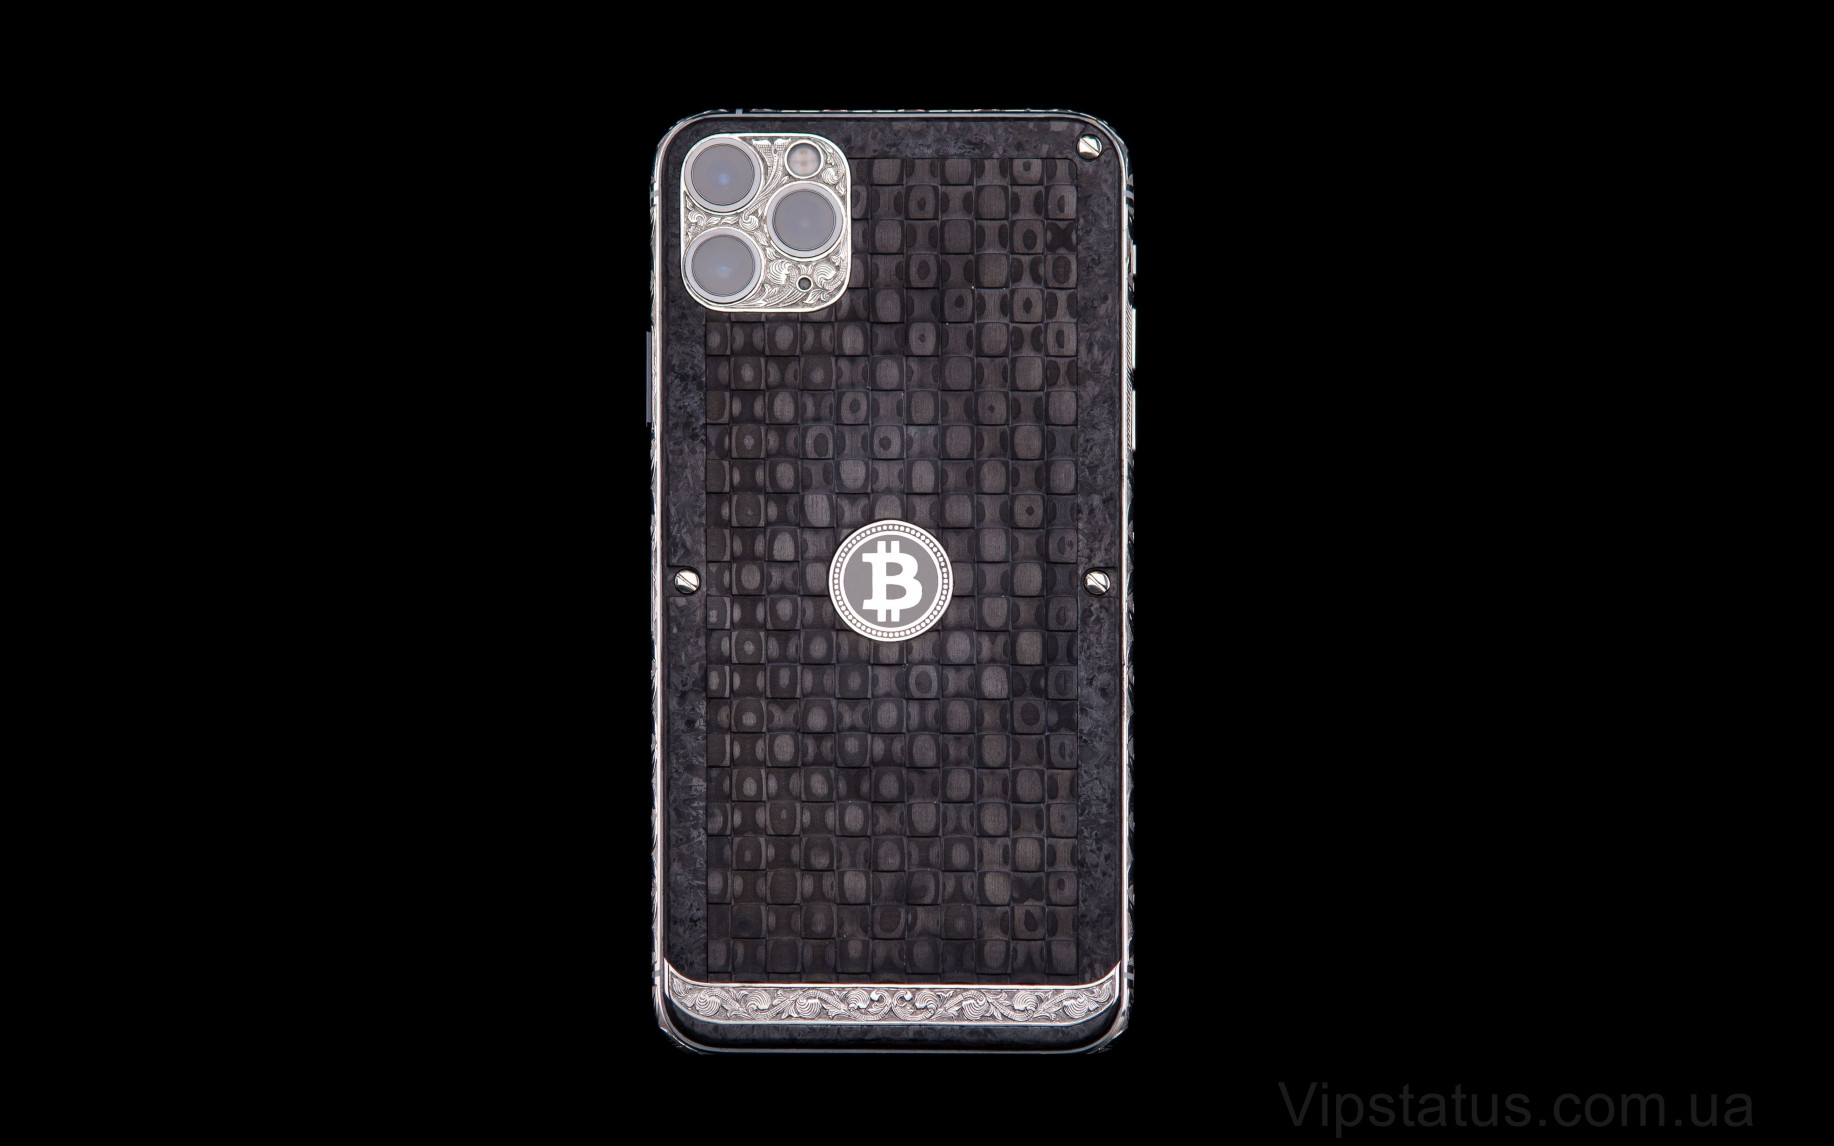 Elite Bitcoin Edition IPHONE 11 PRO 512 GB Bitcoin Edition IPHONE 11 PRO 512 GB image 5